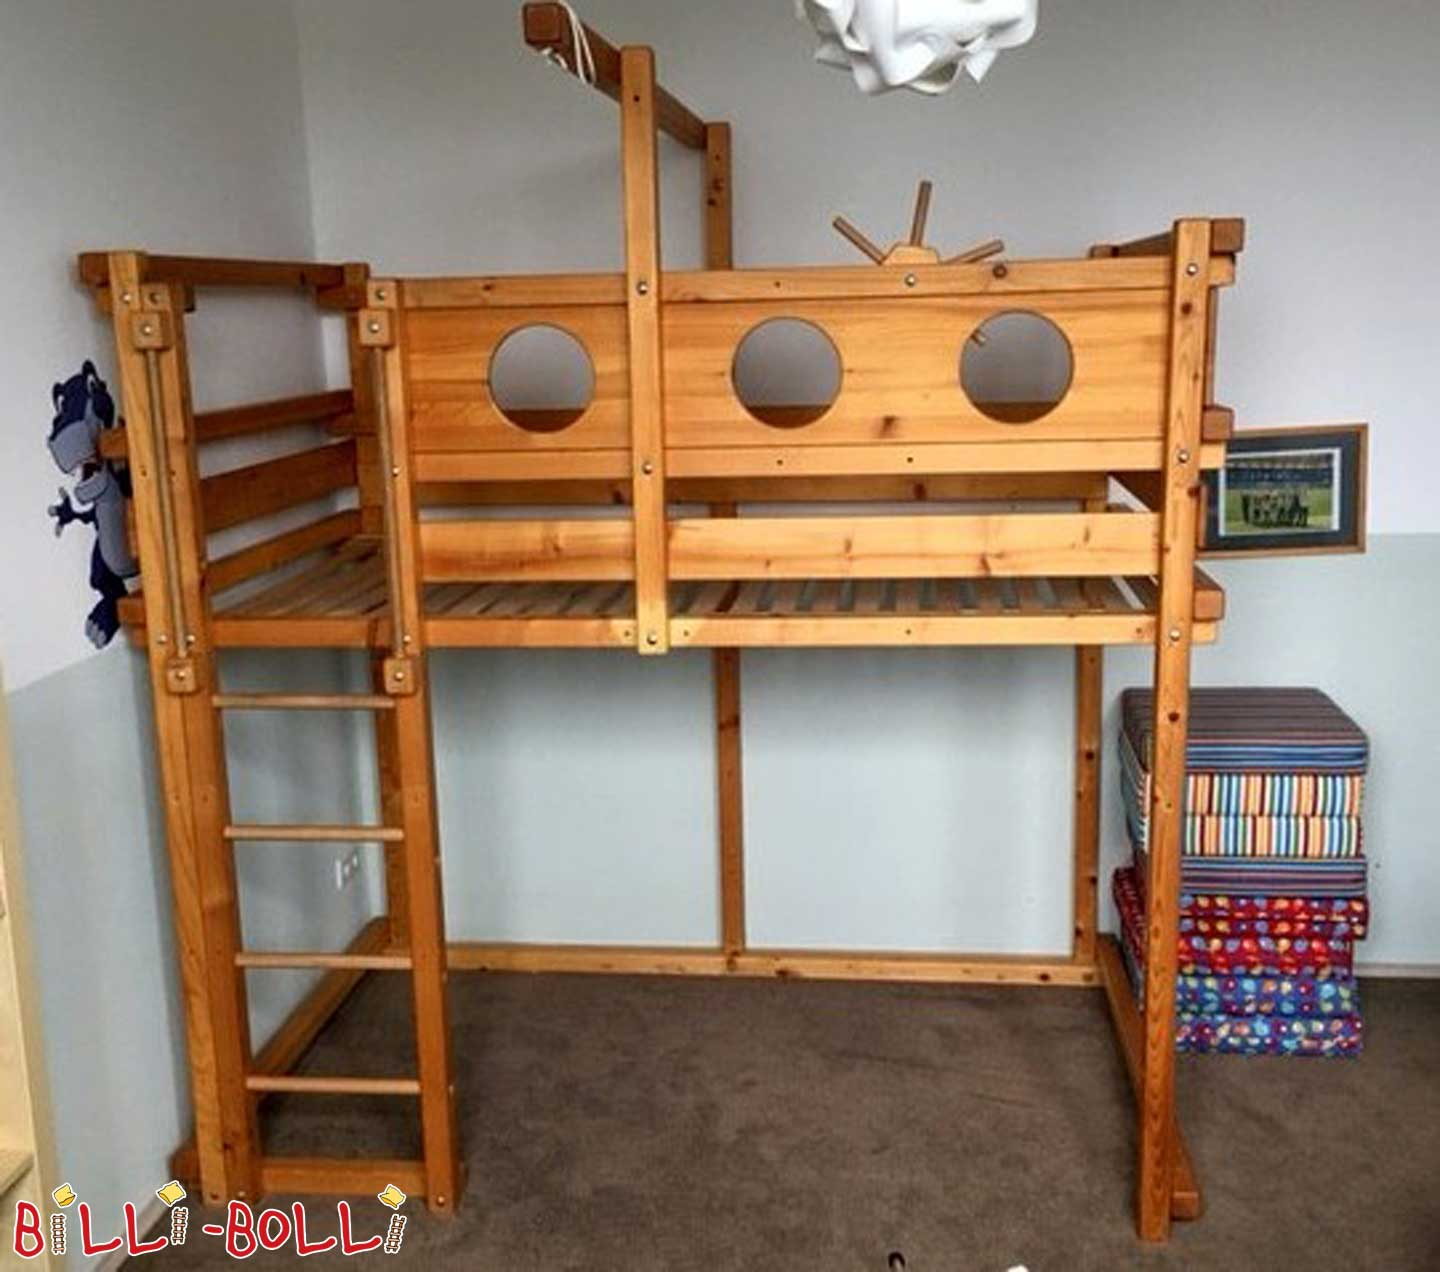 Raised bed with growing, 120 x 200 cm, spruce oiled-waxed (second hand loft bed)